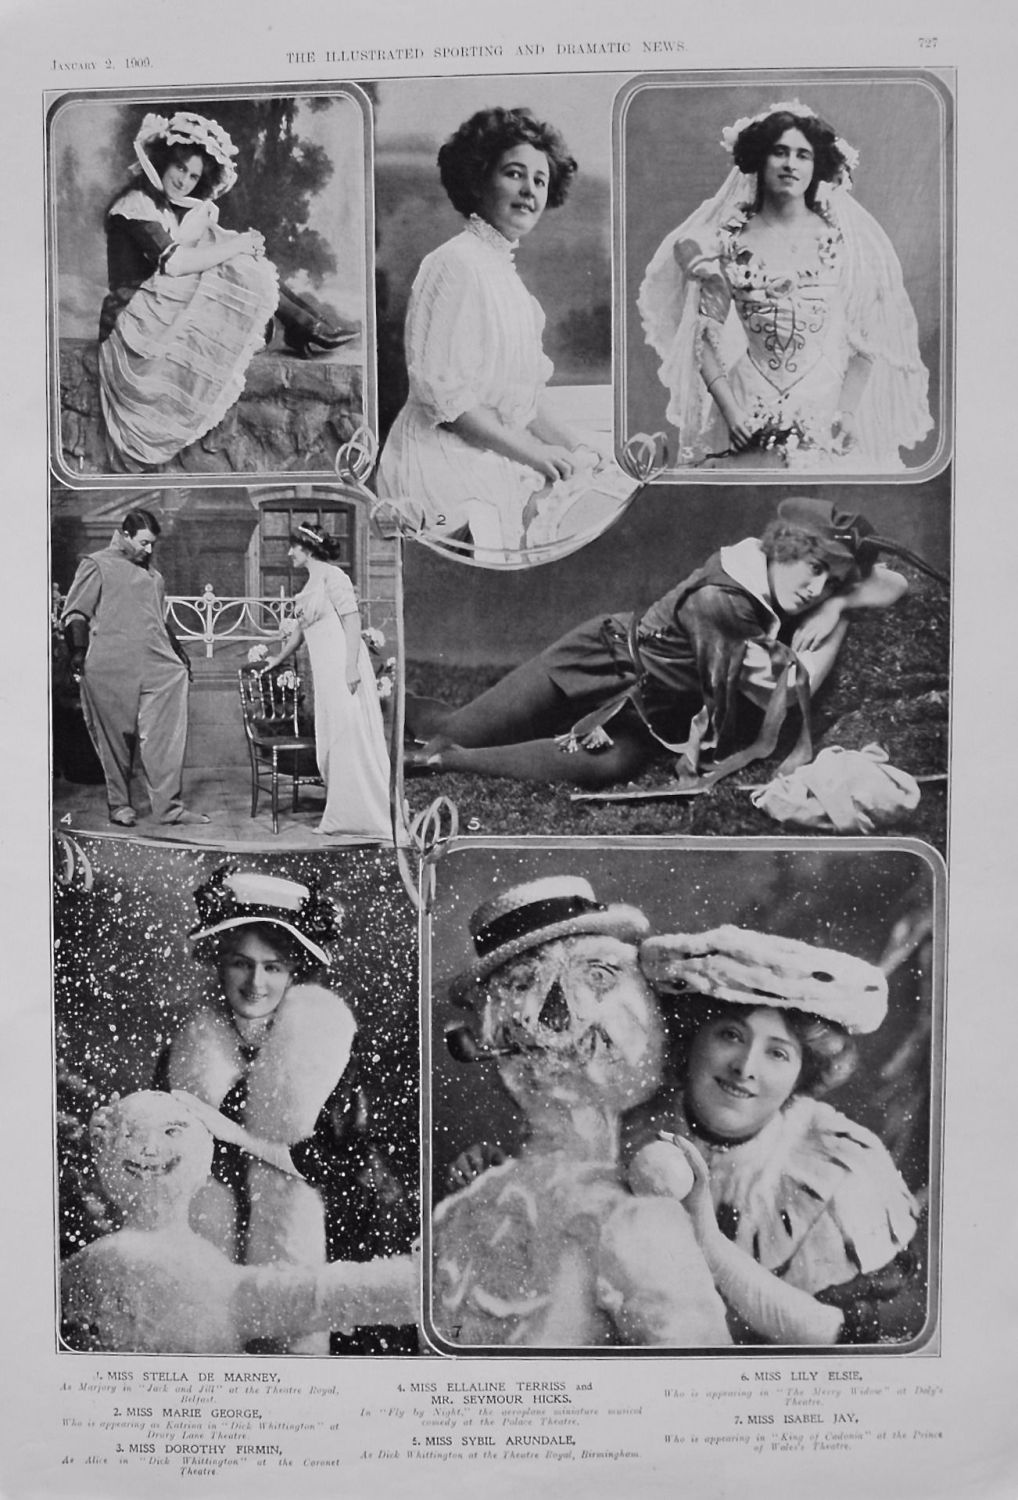 Actresses from the Stage. January 2nd 1909.